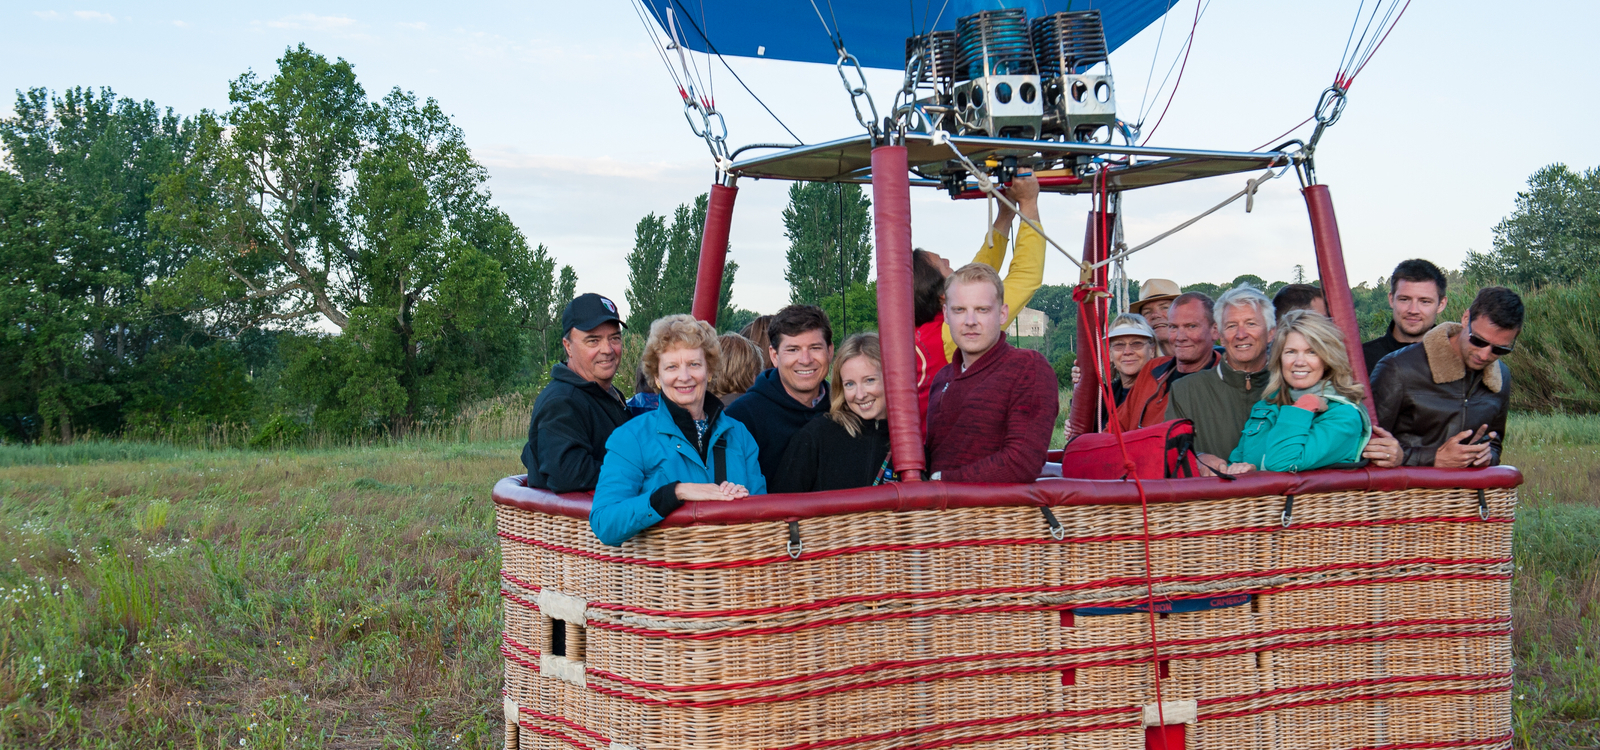 Family hot air 1600x750